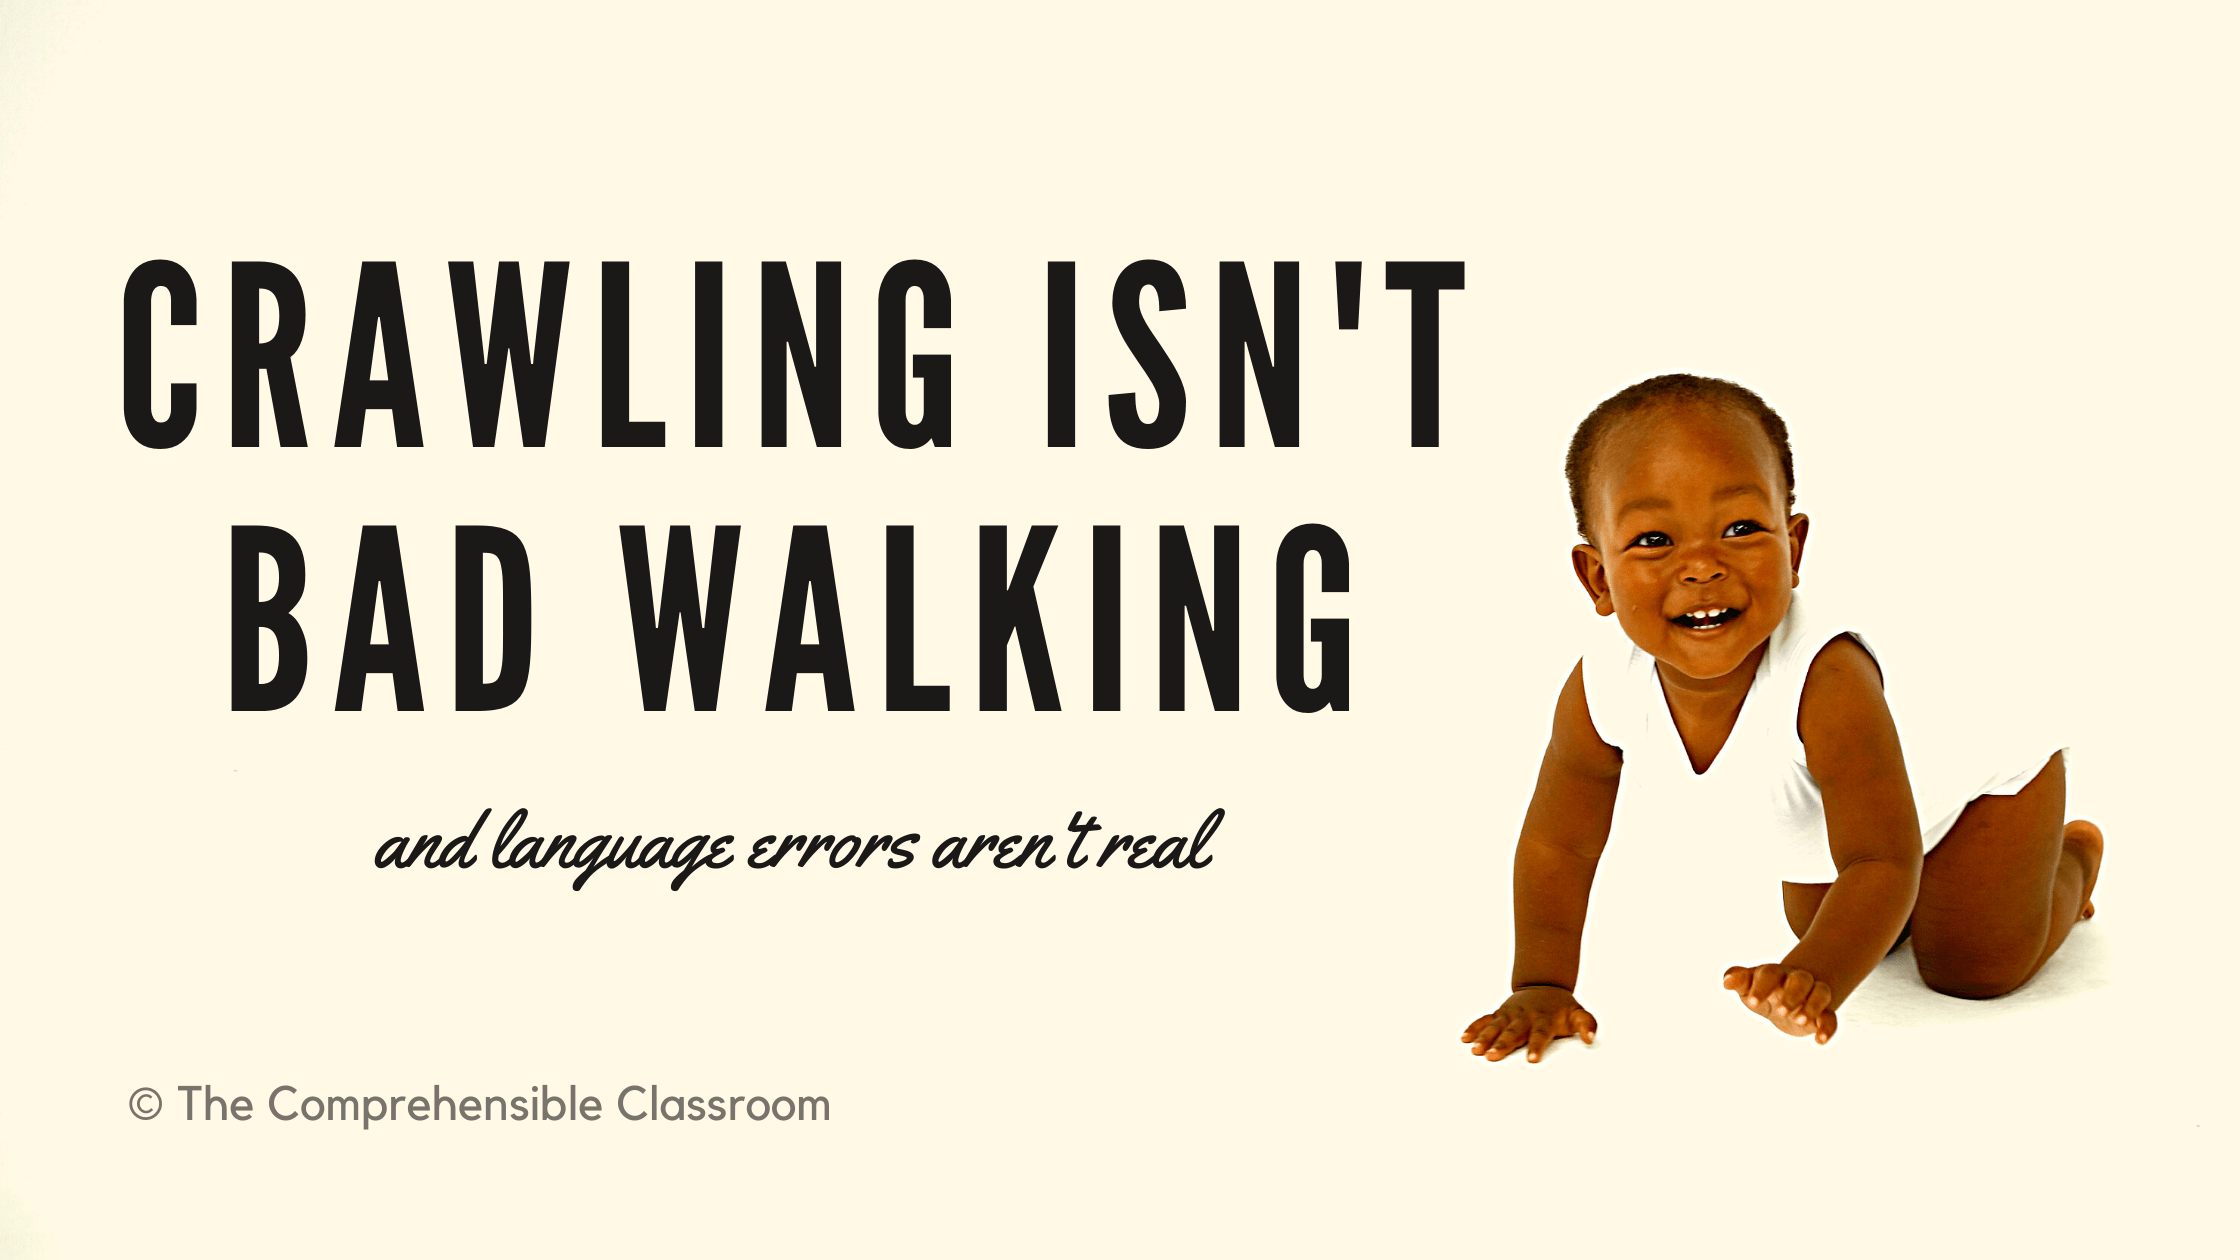 """Black text reads """"Crawling isn't bad walking - and language errors aren't real"""" on an off-white background with a photo of a cute, smiling baby crawling beside it."""